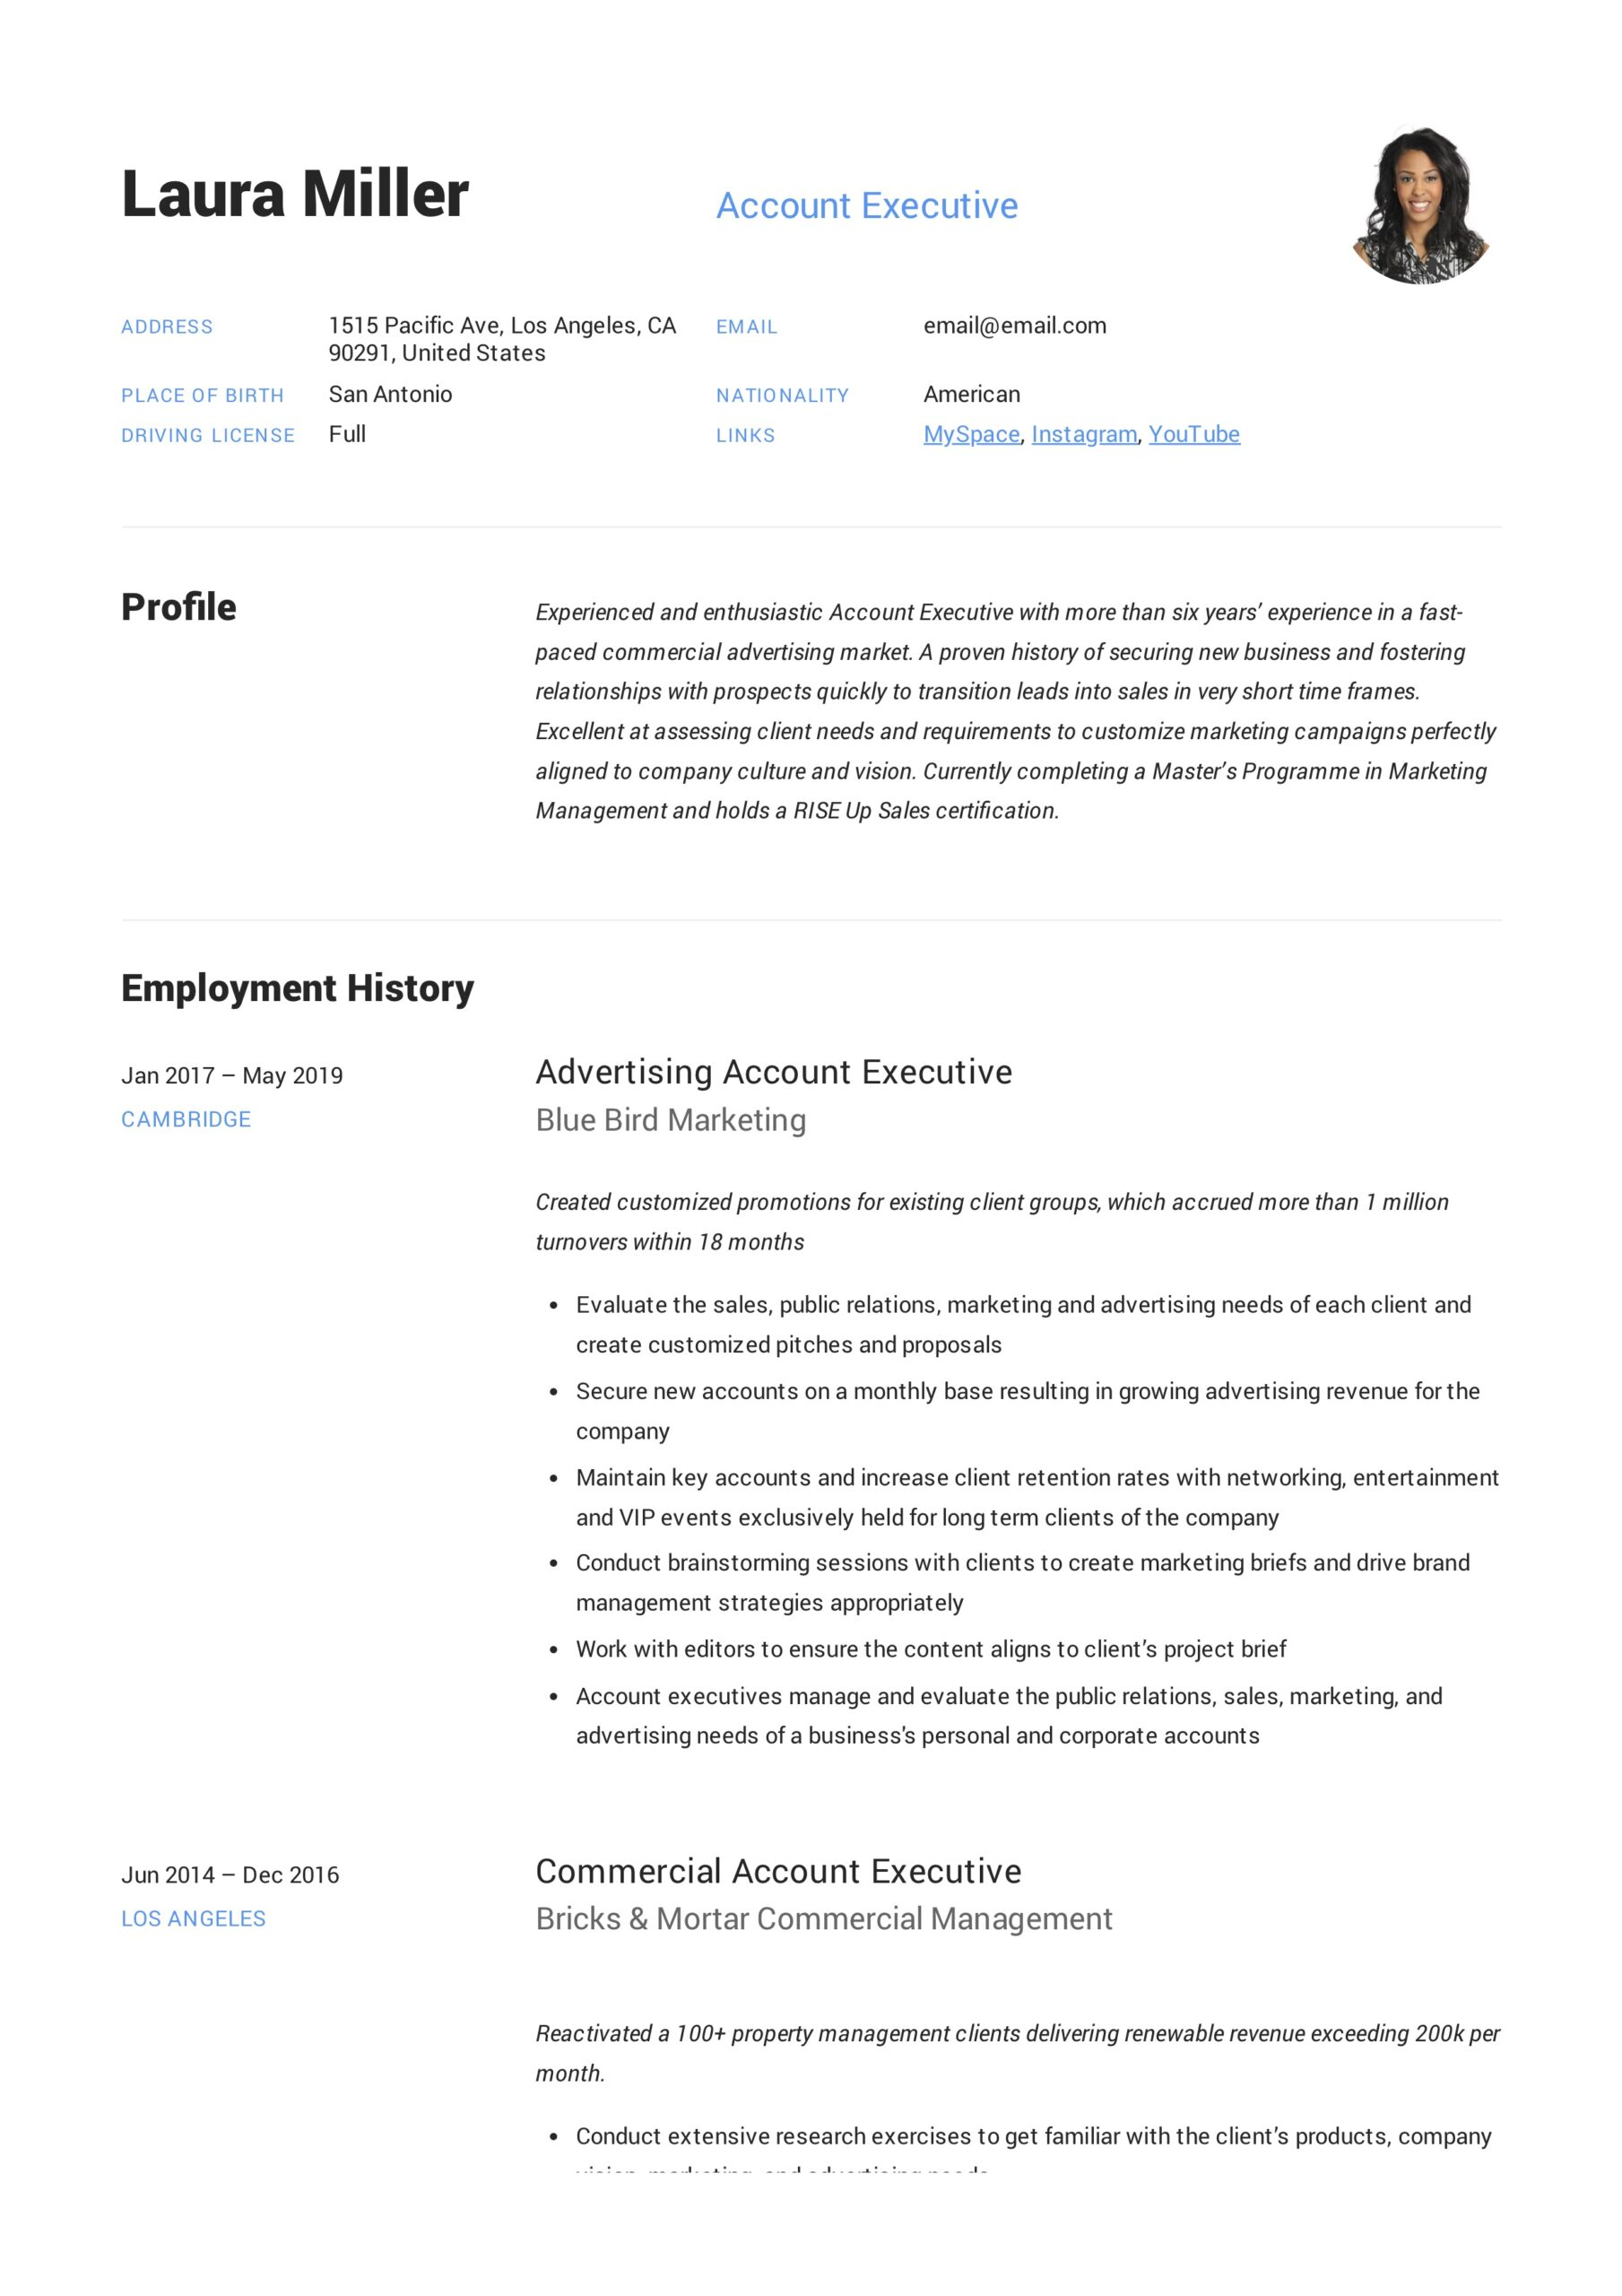 account executive resume writing guide templates pdf example community service worker Resume Account Executive Resume